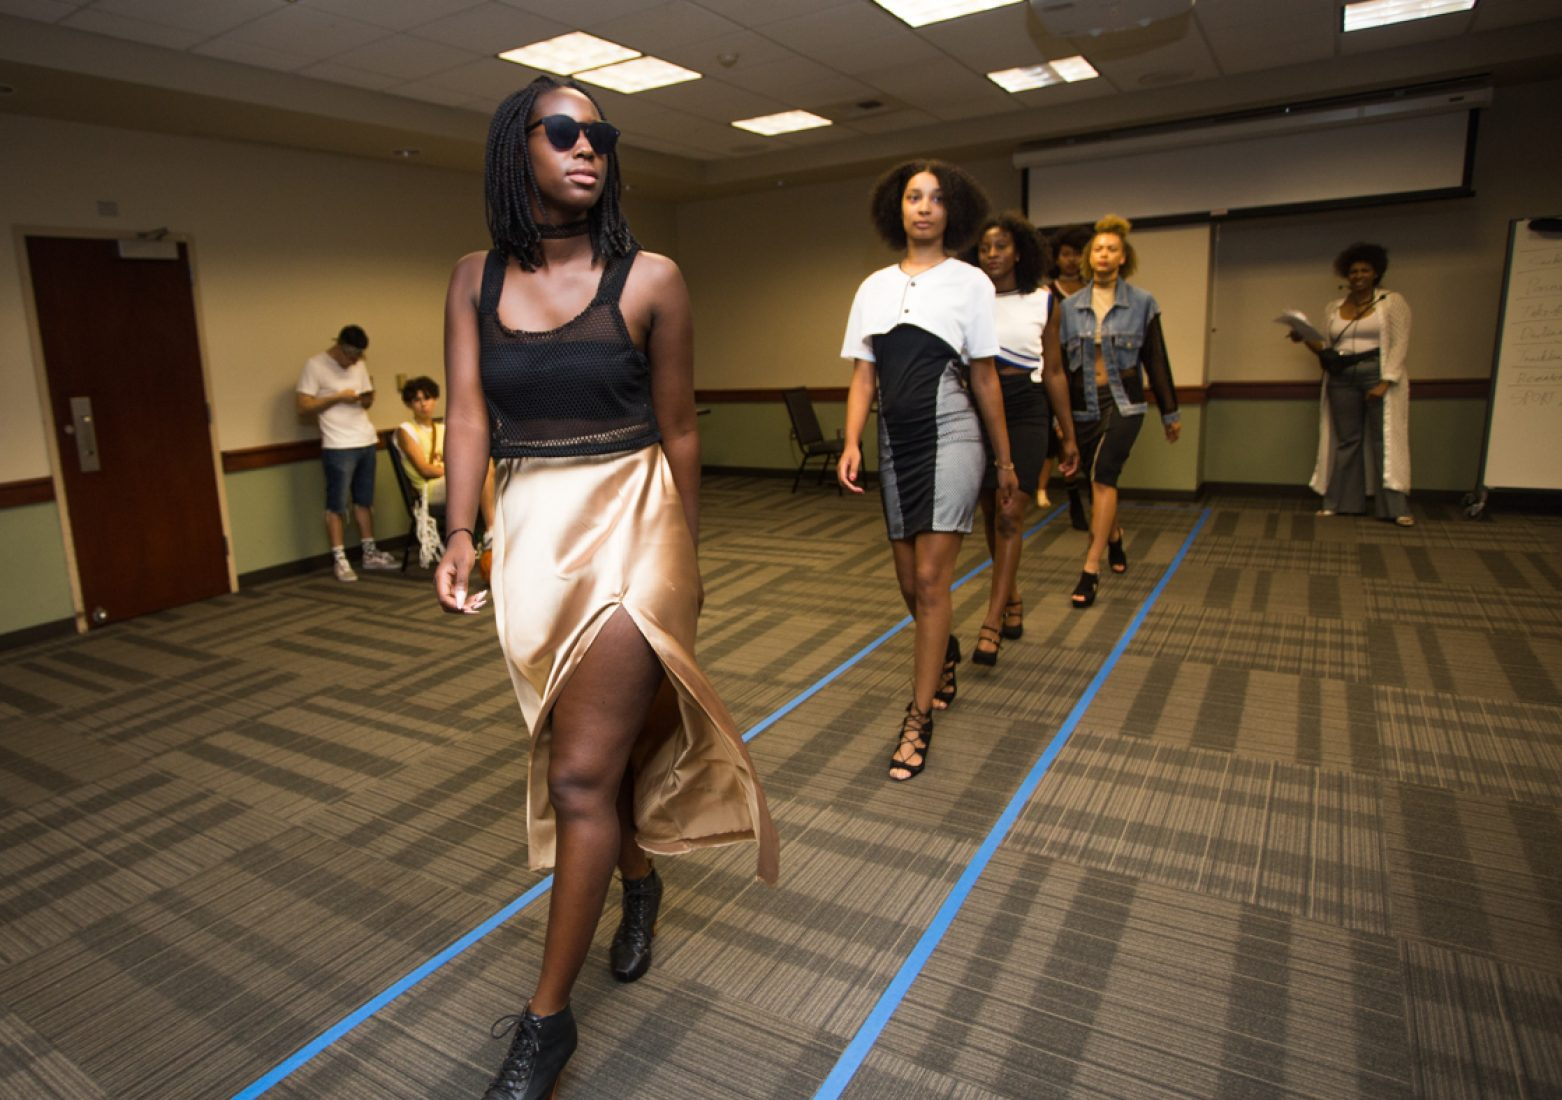 Models wear designs from Gabrielle Pyle's 'SPORT LUXXXE' collection strut to the upbeat music of 'Fade' by Kanye West during rehearsal in the University Union Foothill Suite on Wednesday. (Photo by Nicole Fowler)